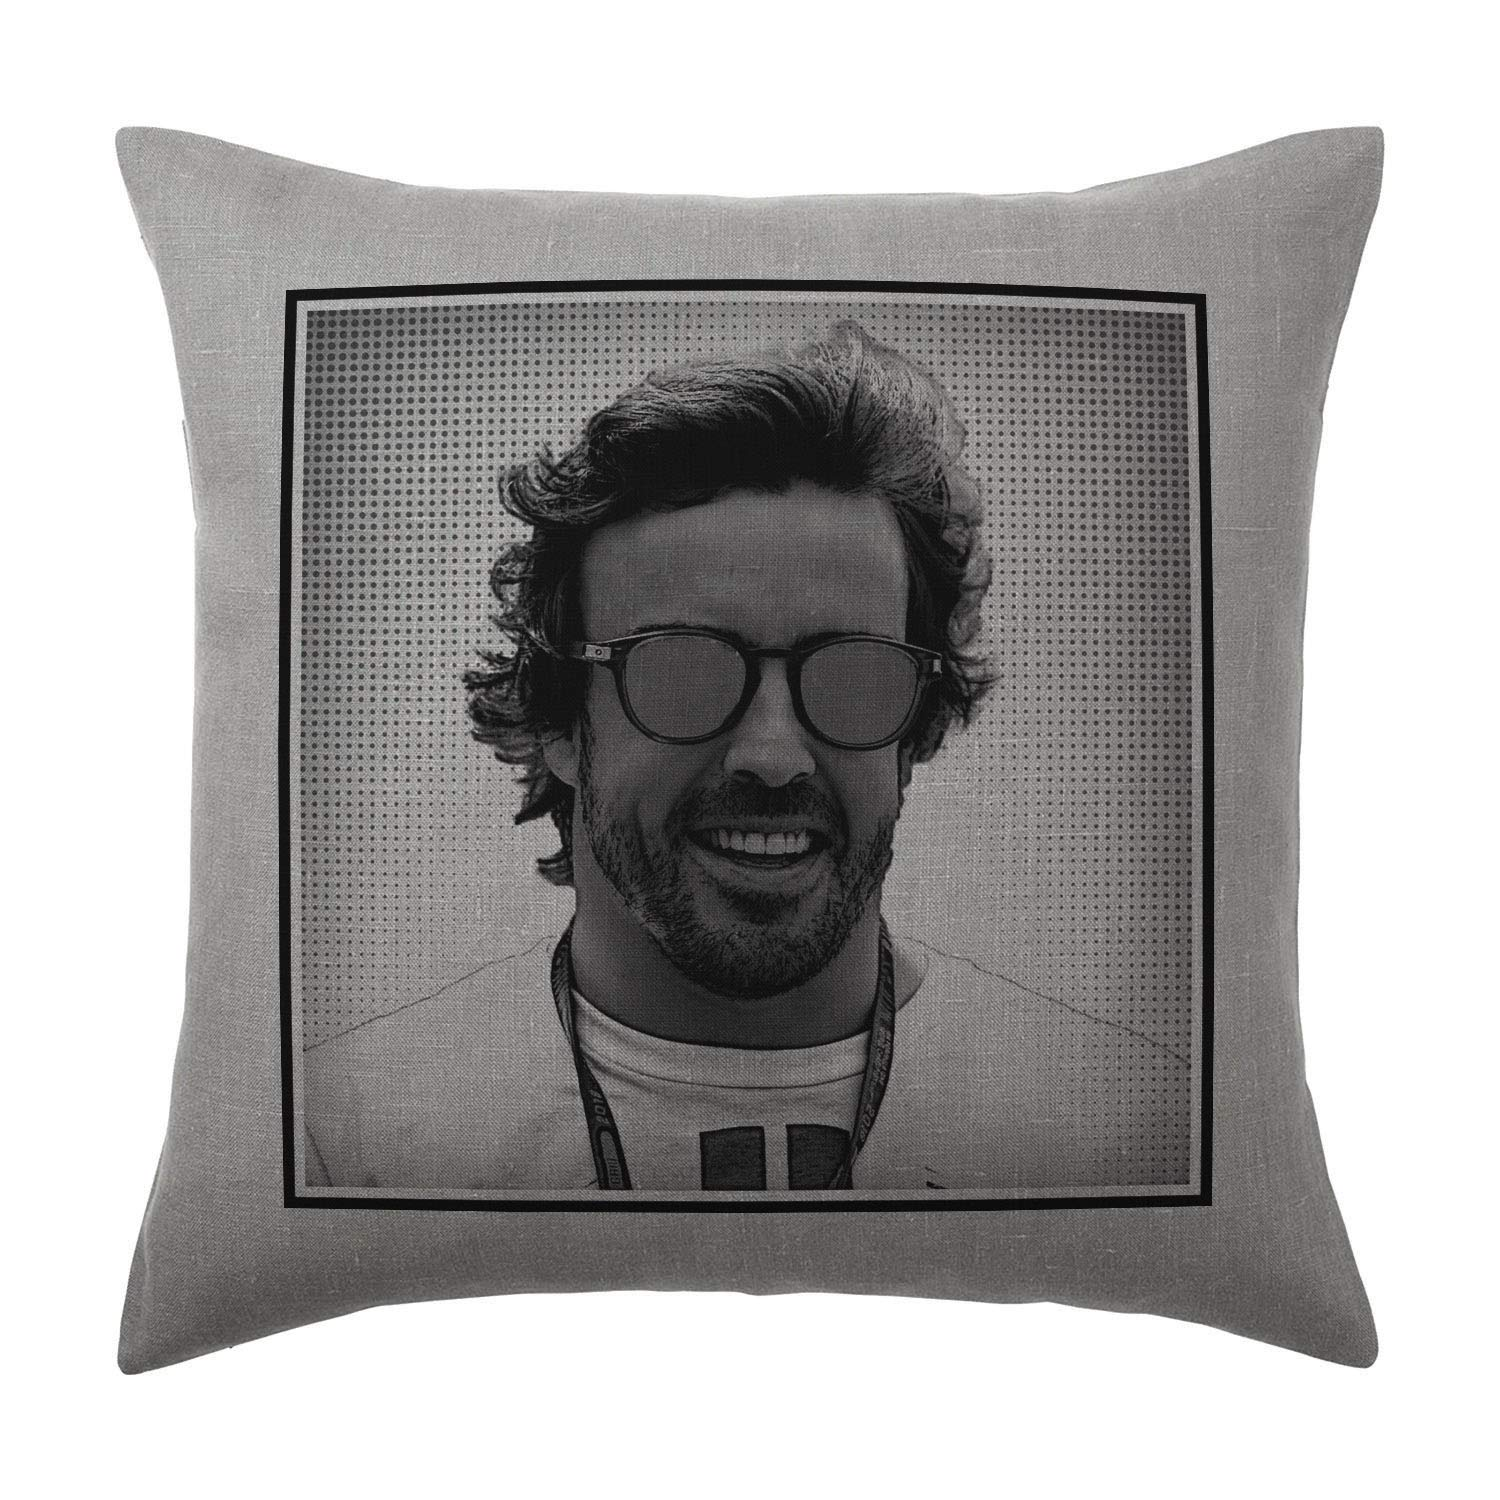 Cover and filling pad 100/% Cotton 40x40cm Silver Grey Available with or without filling pad Orlando Bloom Cushion Pillow